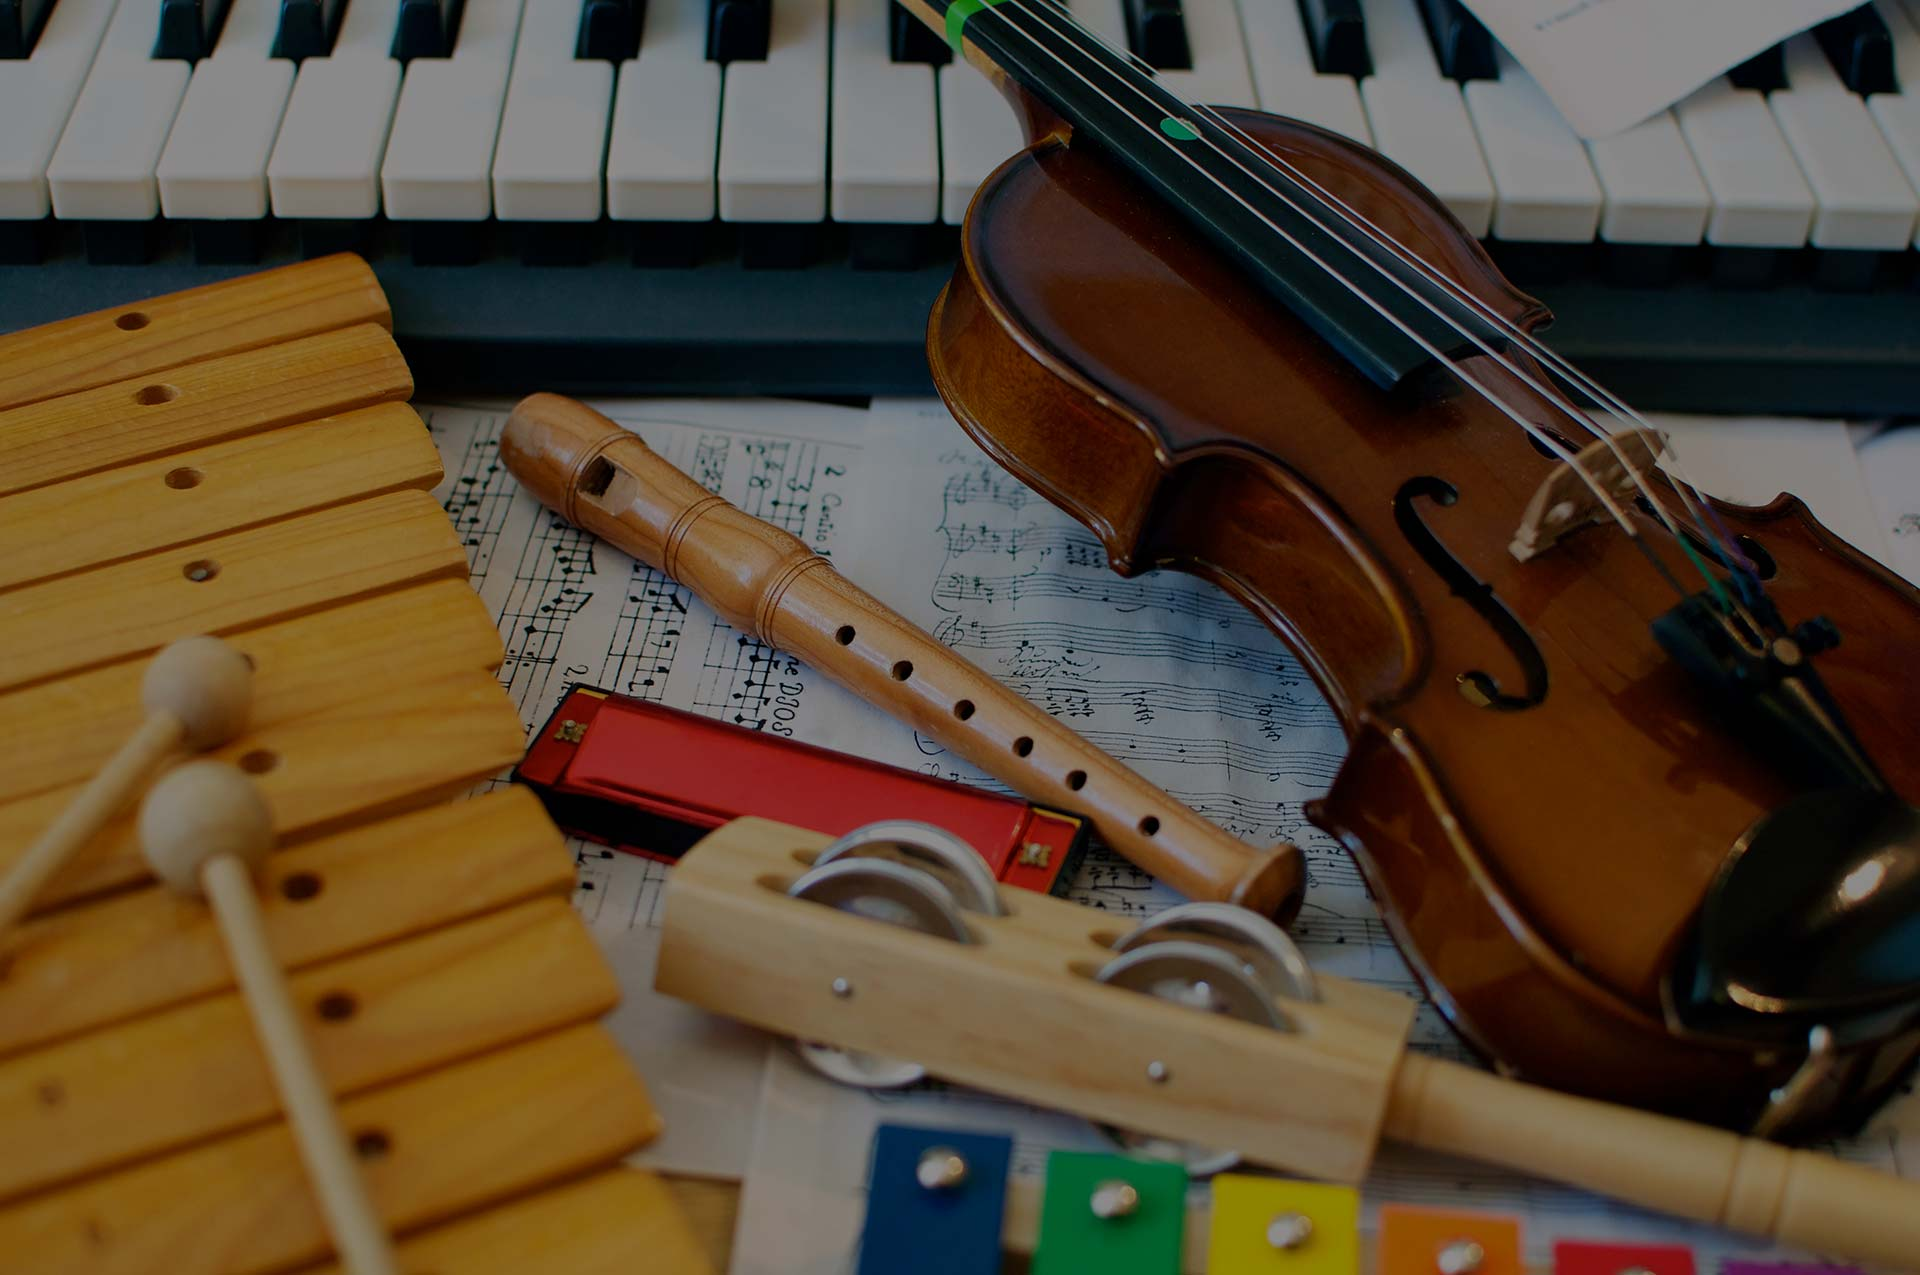 Collection of instruments for children to learn